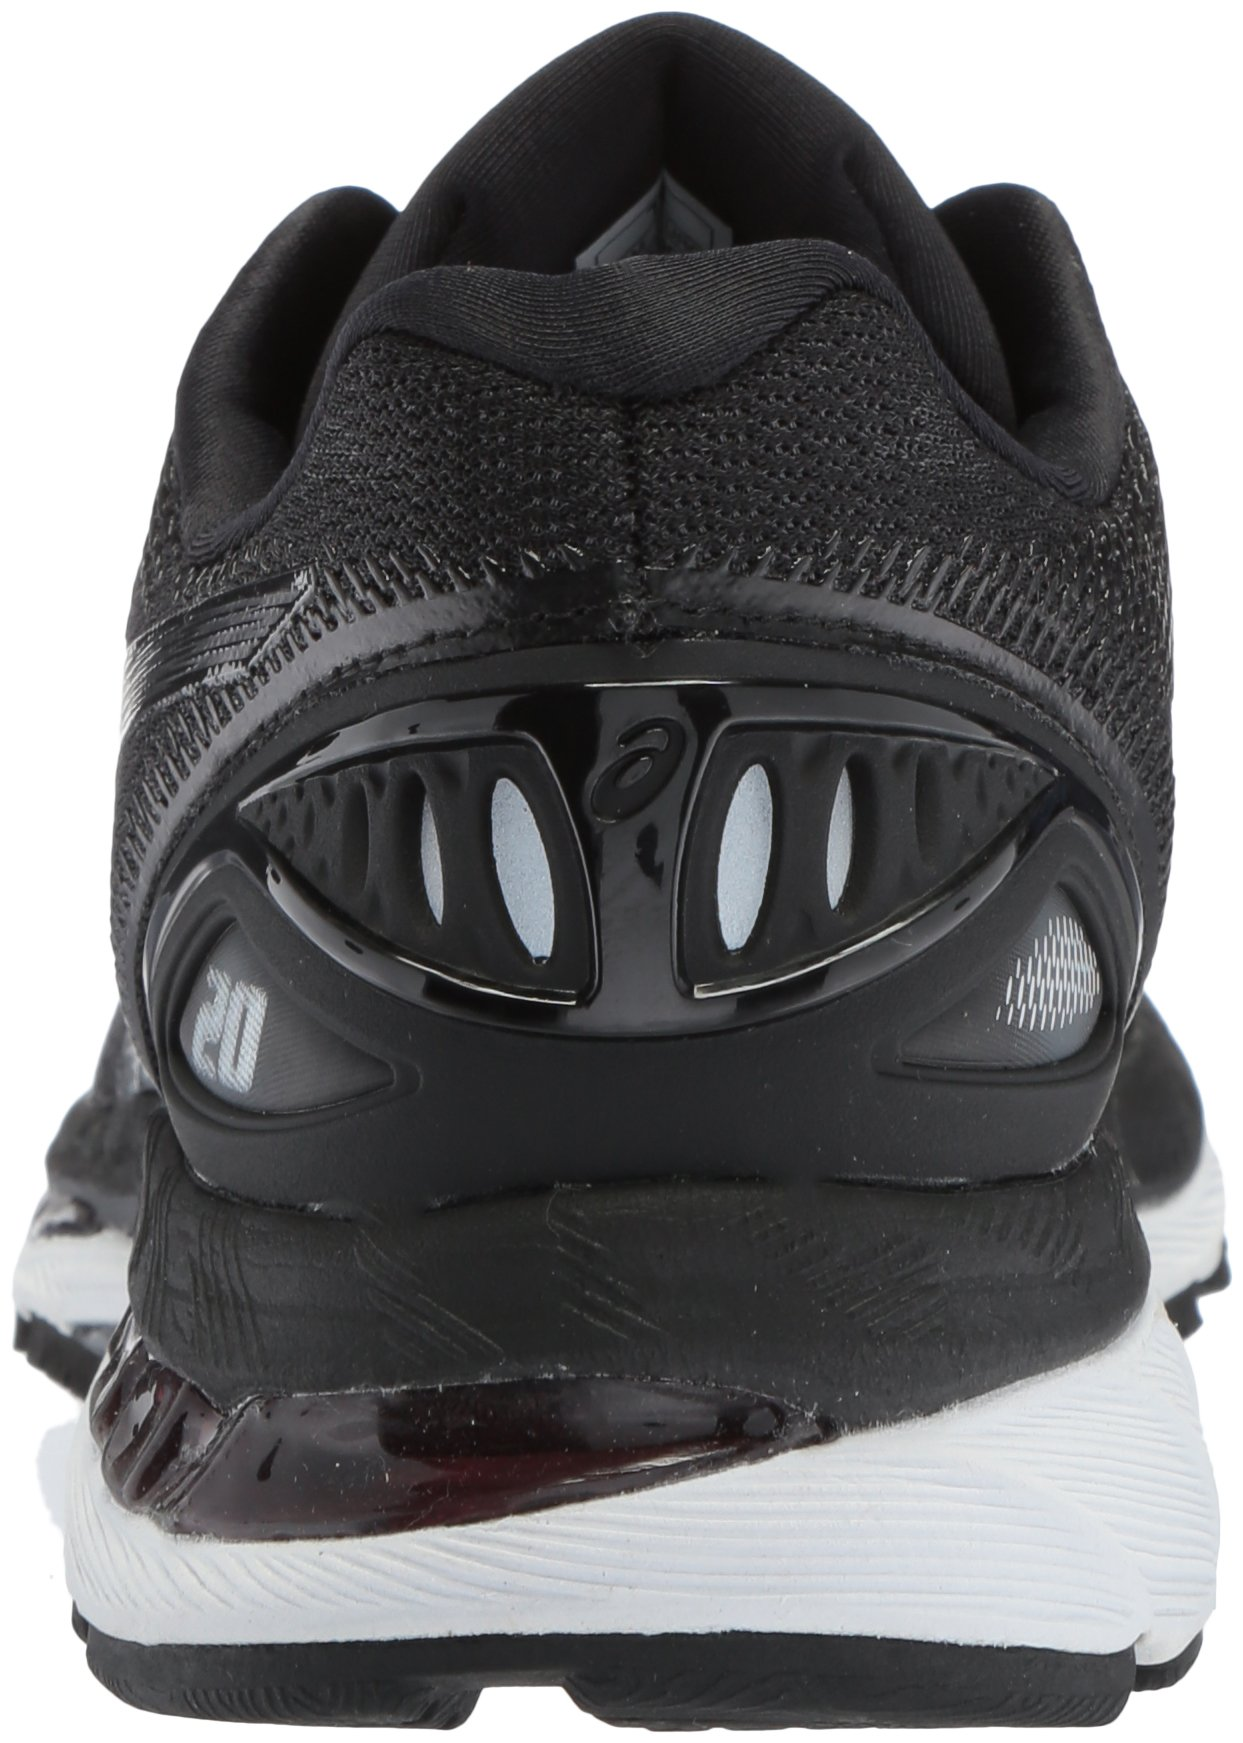 ASICS Women's Gel-Nimbus 20 Running Shoe, black/white/carbon, 5 Medium US by ASICS (Image #2)